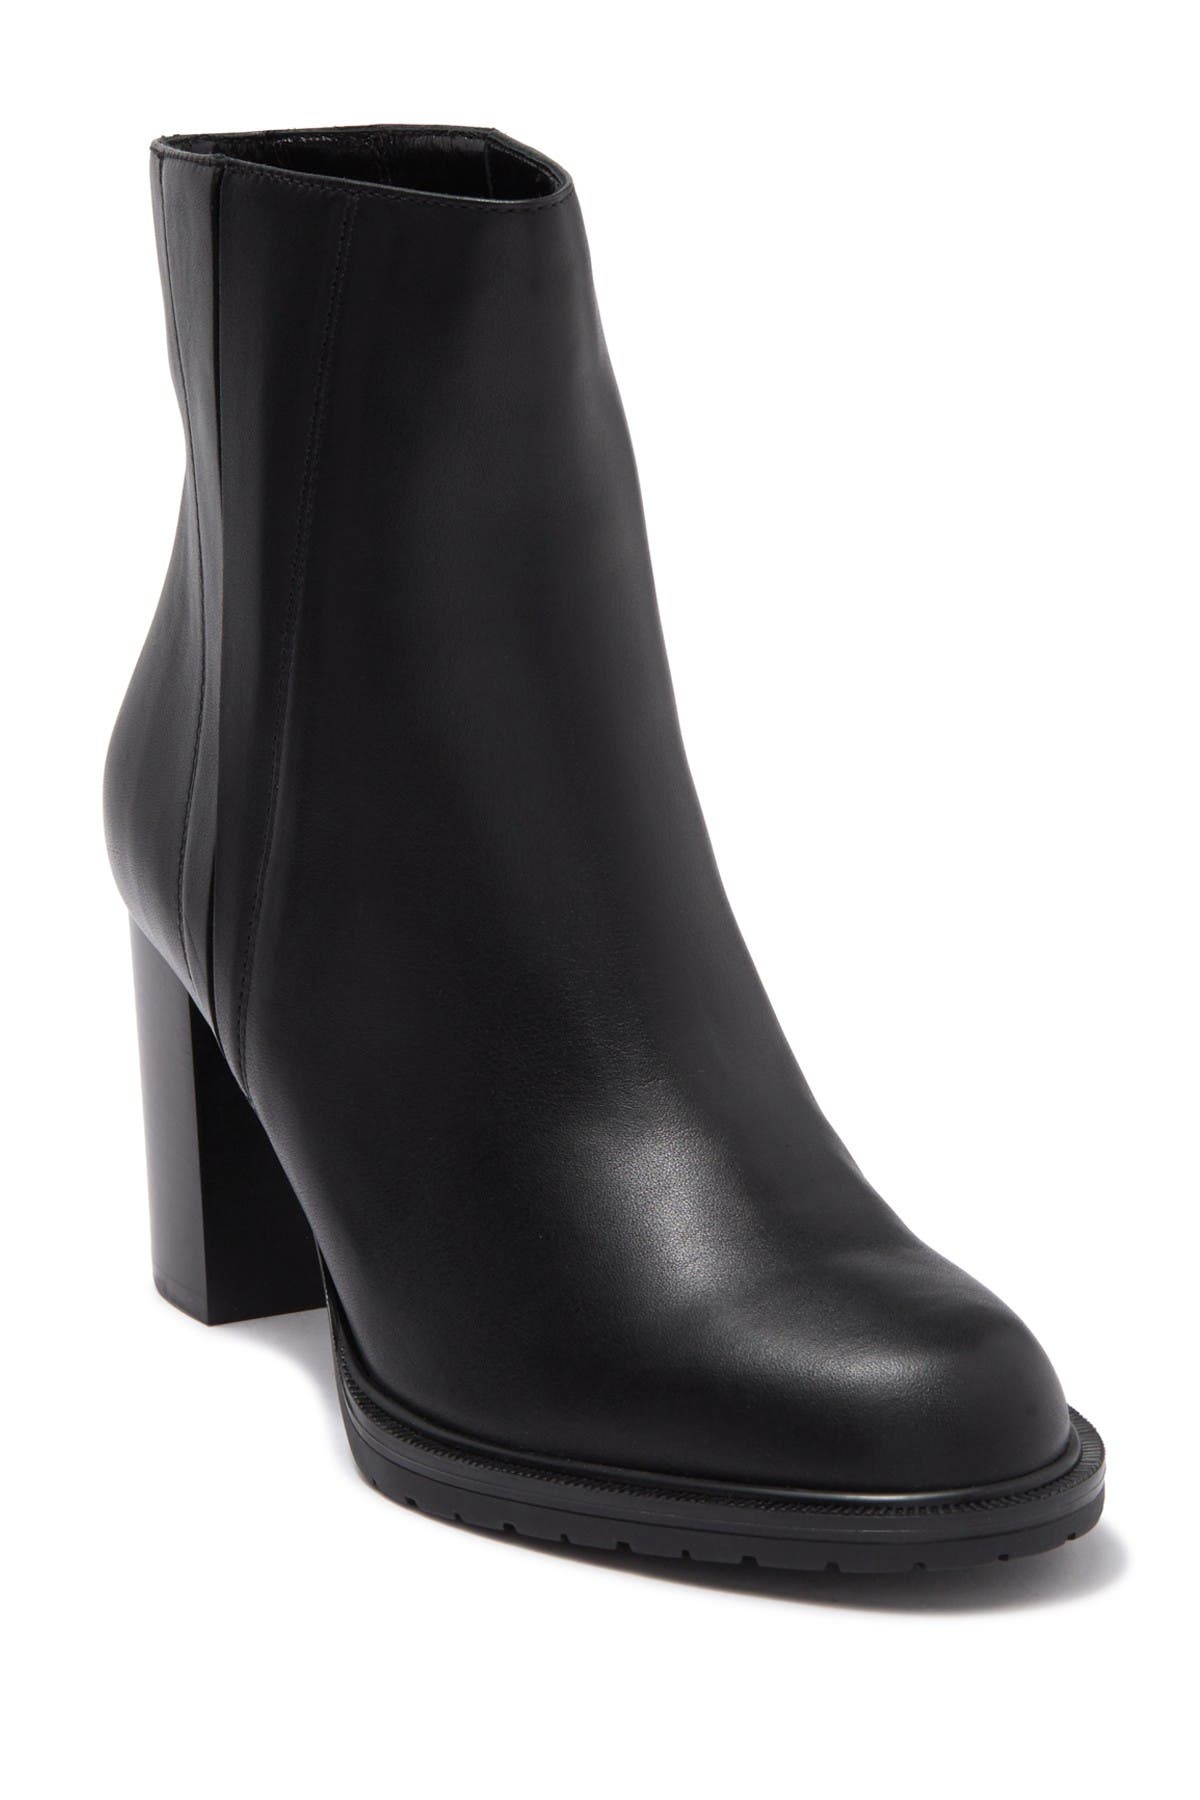 Image of Aquatalia Betsy Leather Block Heel Boot